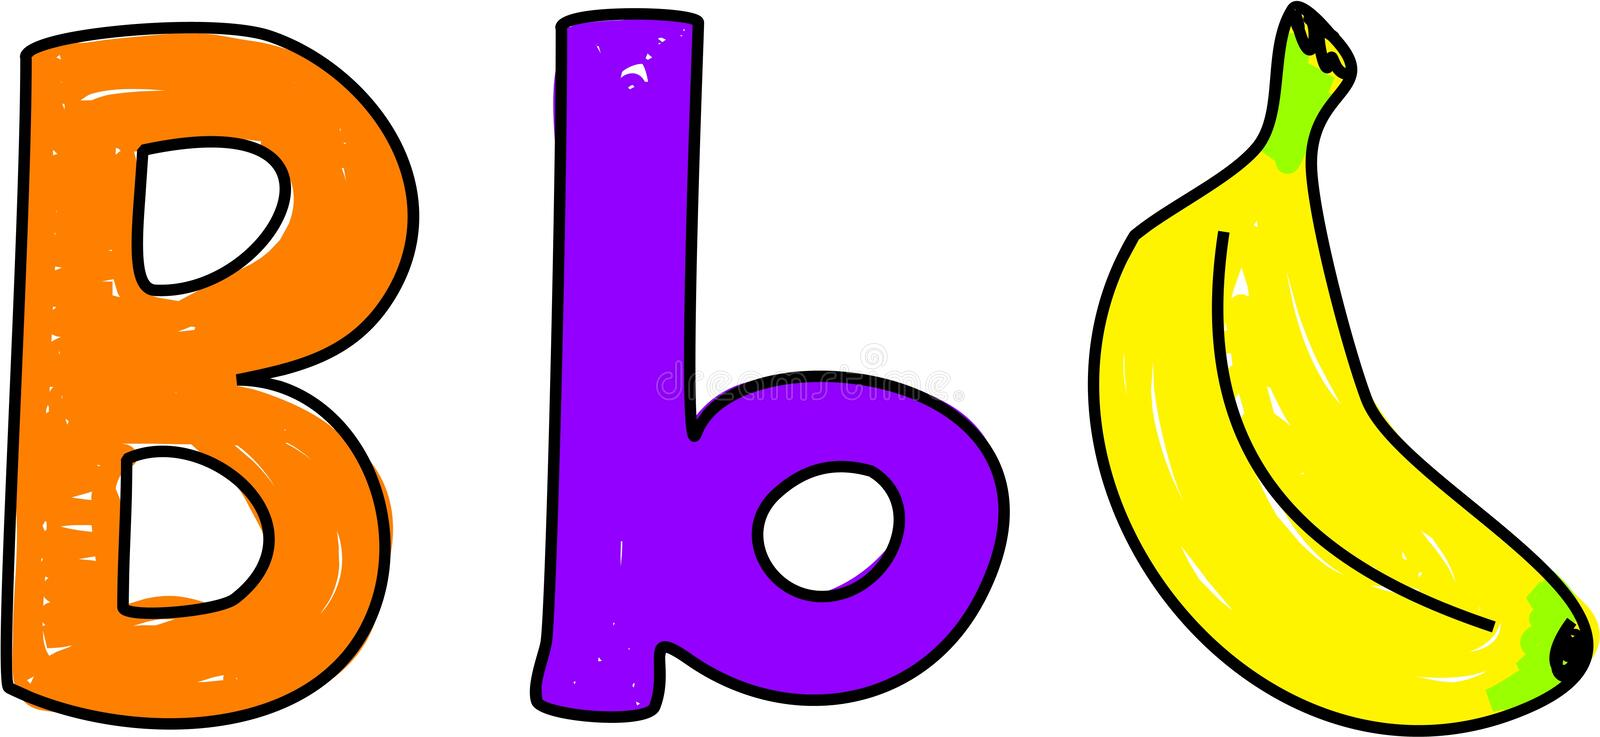 Download B is for banana stock vector. Image of pronunciation, aids - 1141057